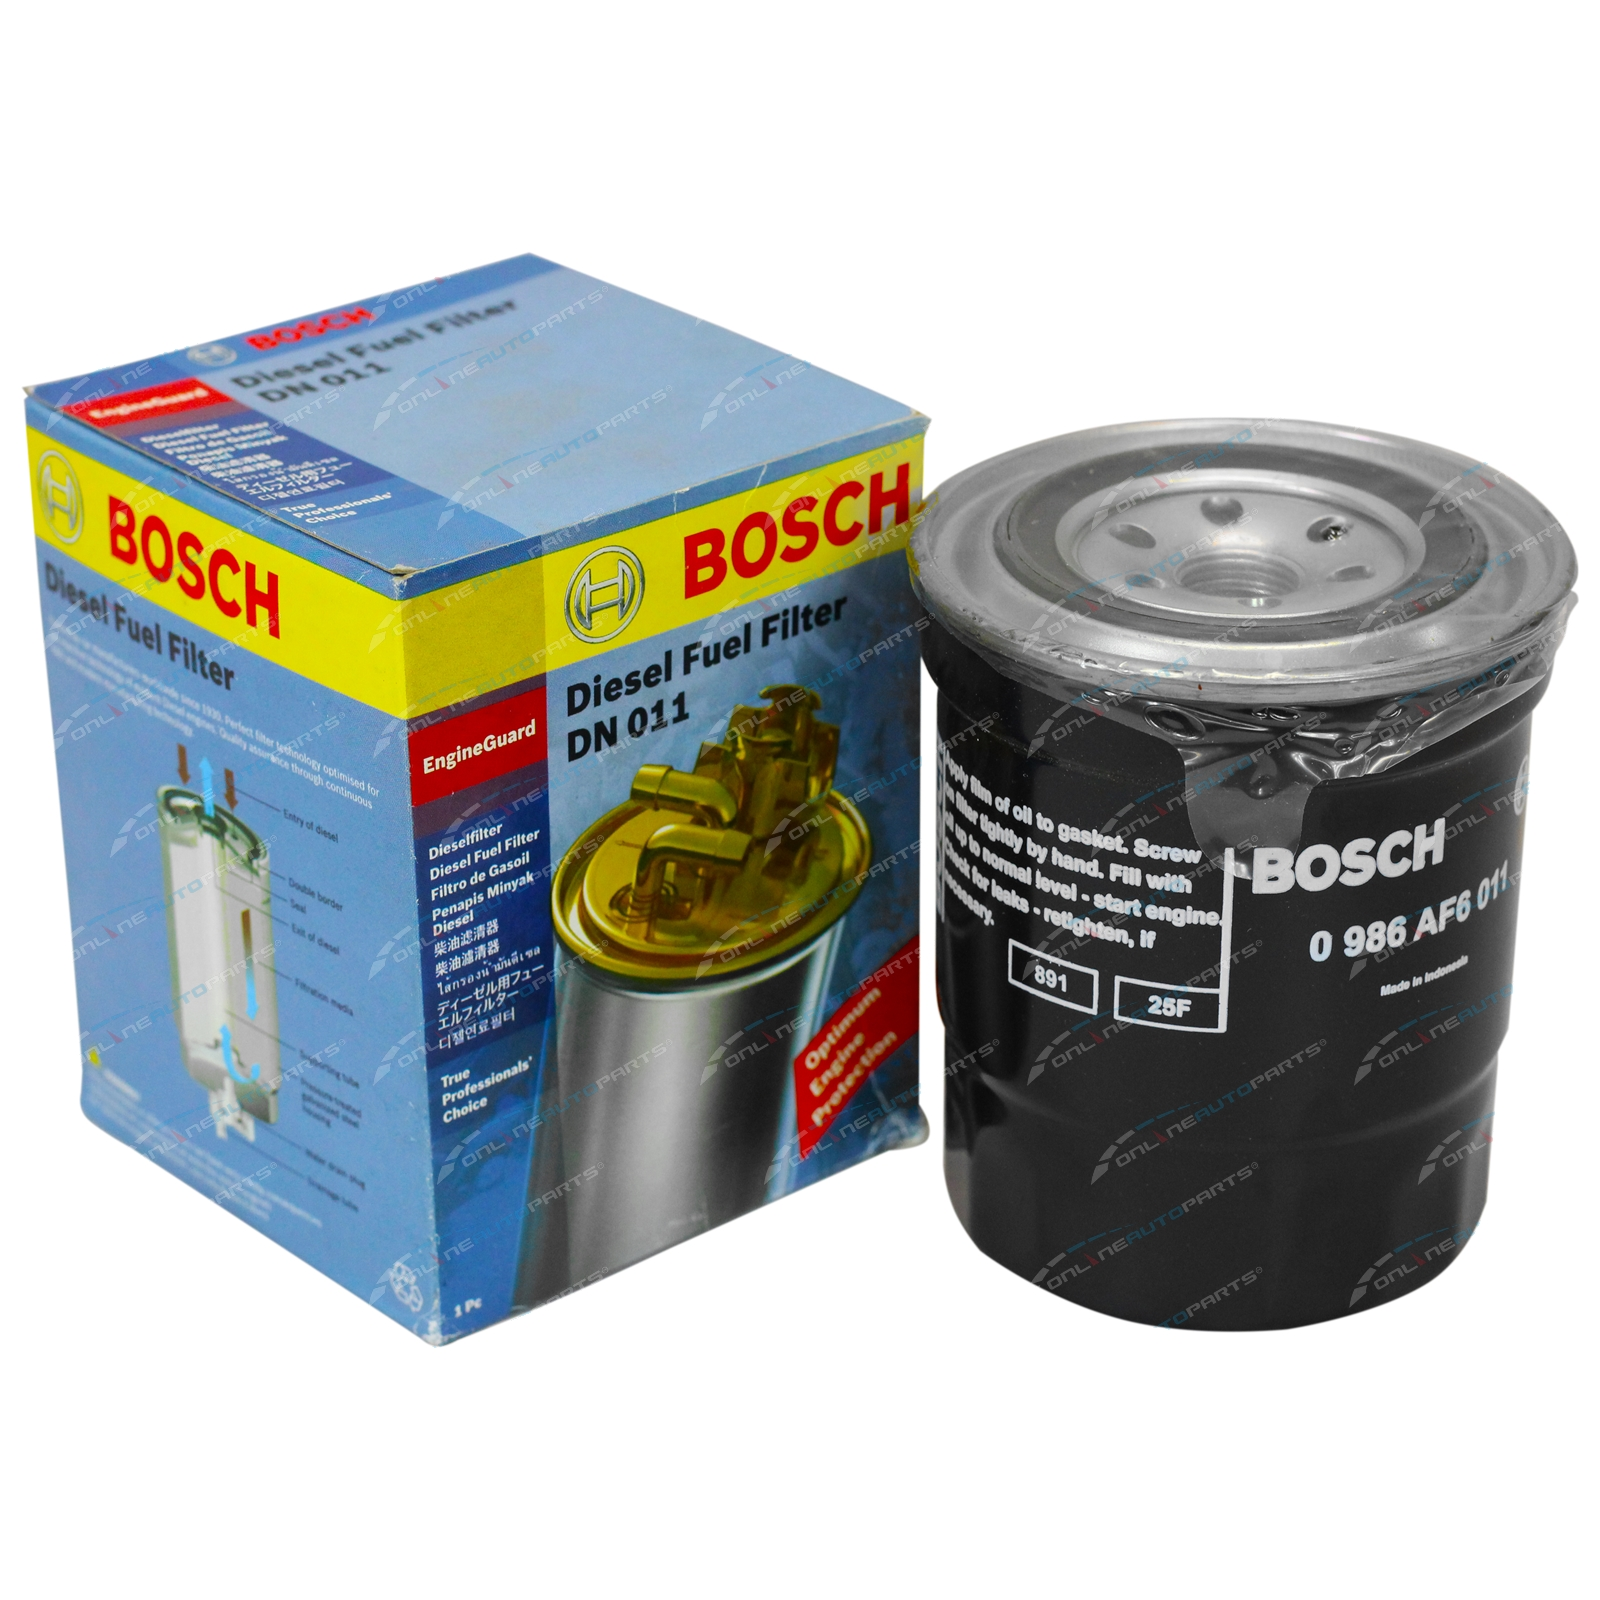 Dn011 Fuel Filter Bosch Suits Nissan Navara D21 Onlineautoparts Filters